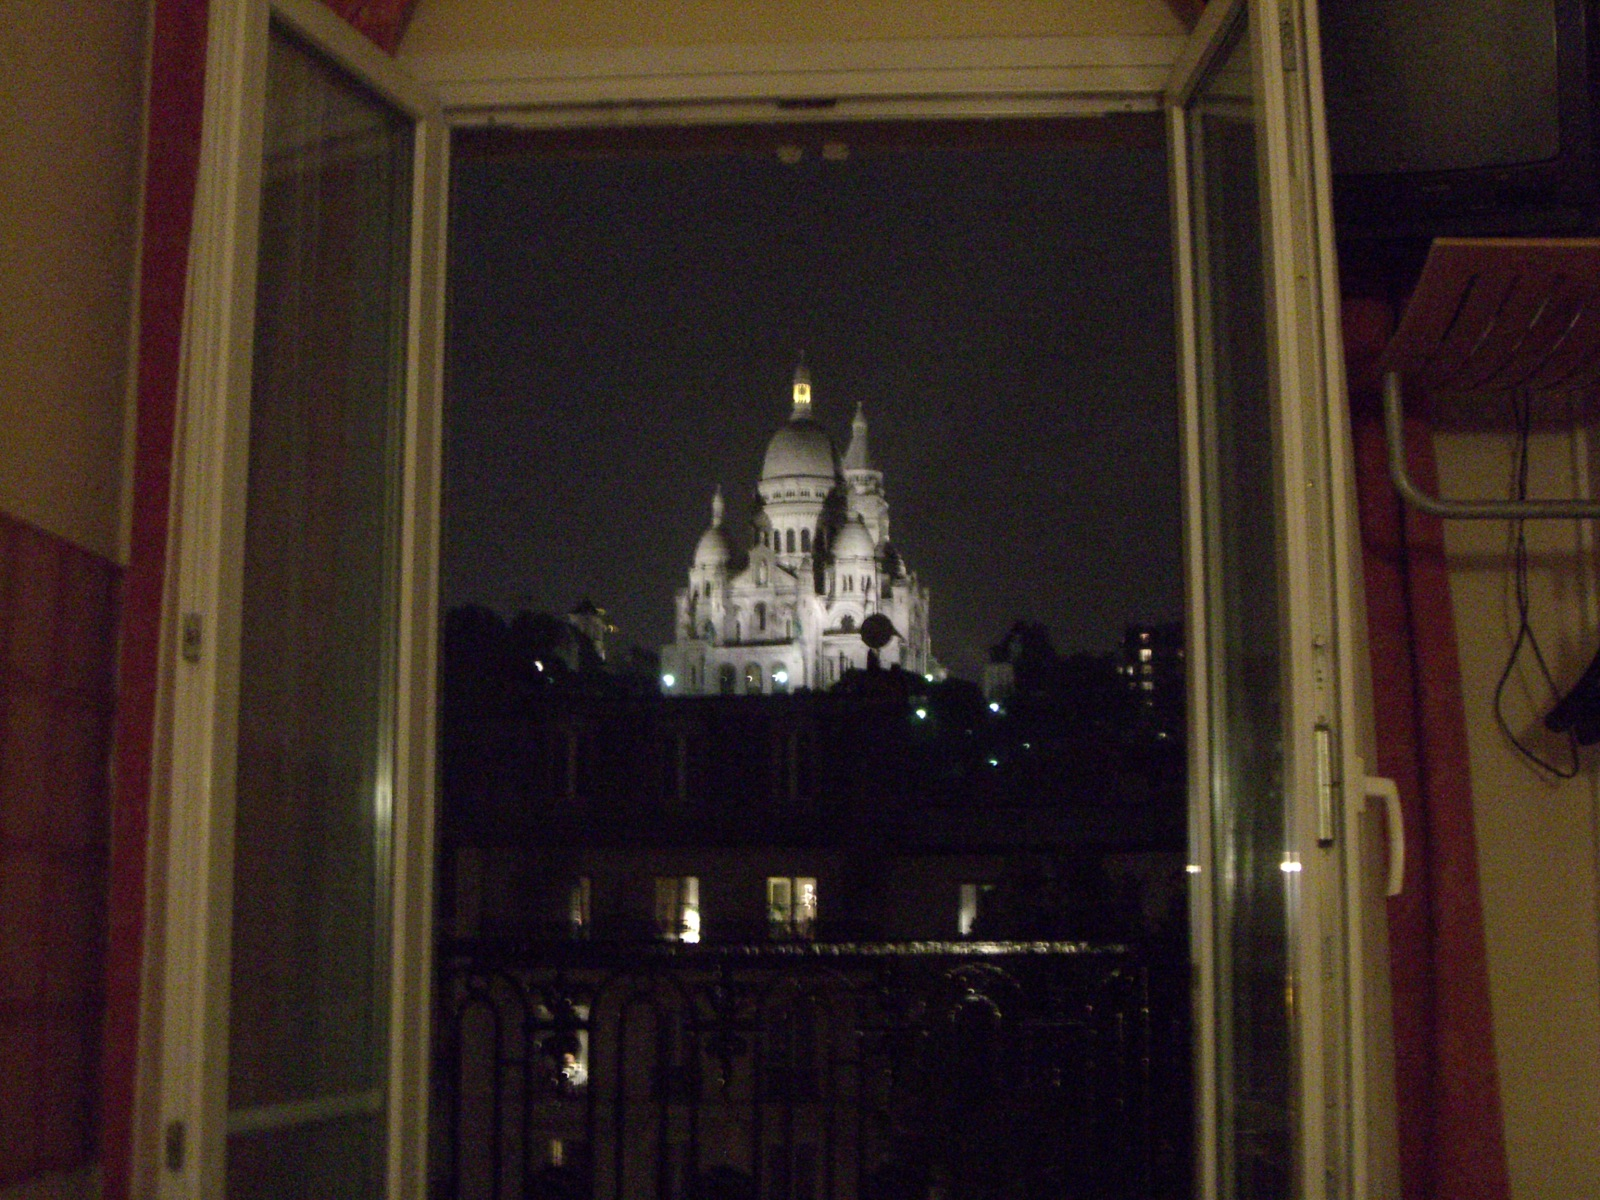 The view of the Sacre Coeur from my room in Paris